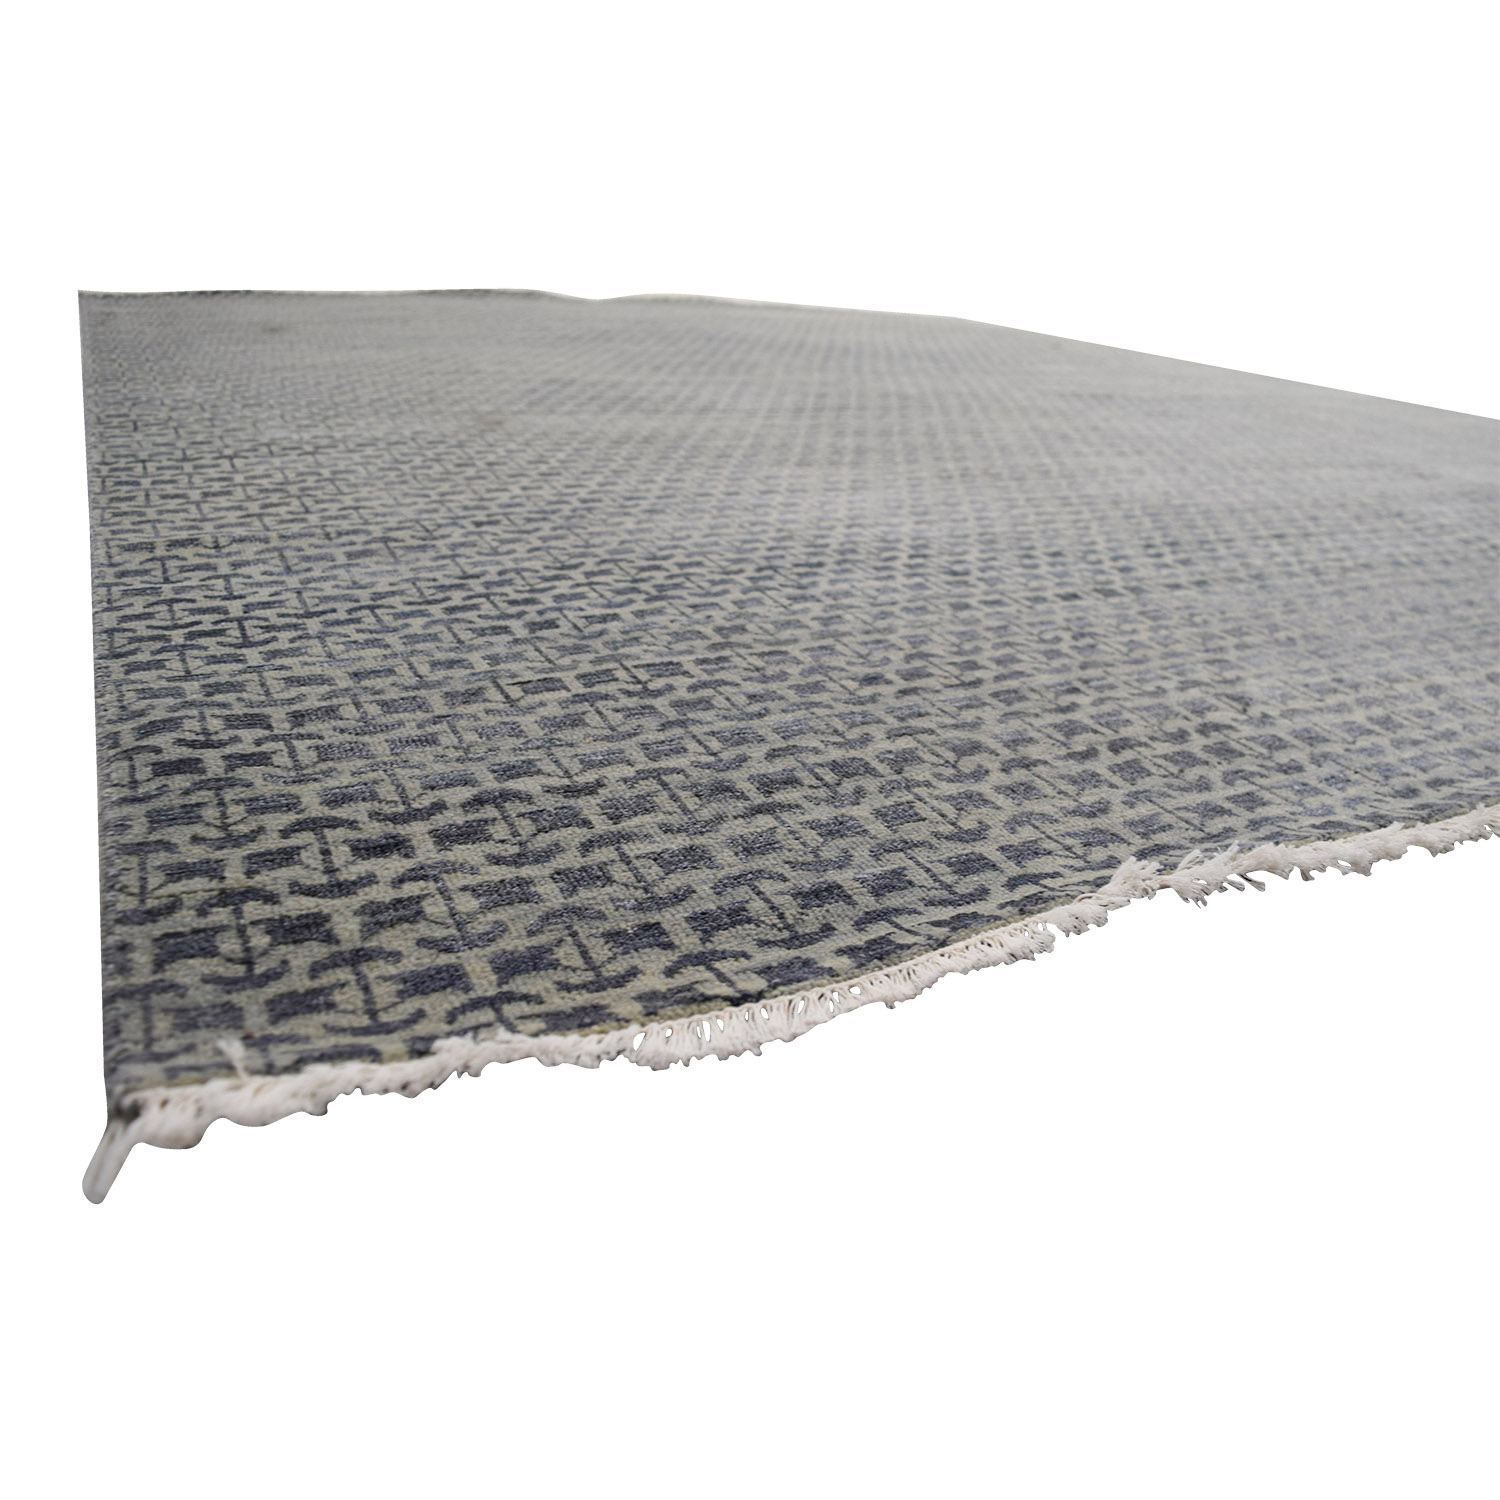 shop Obeetee Hand Knotted Blue Grey Wool Rug Obeetee Rugs